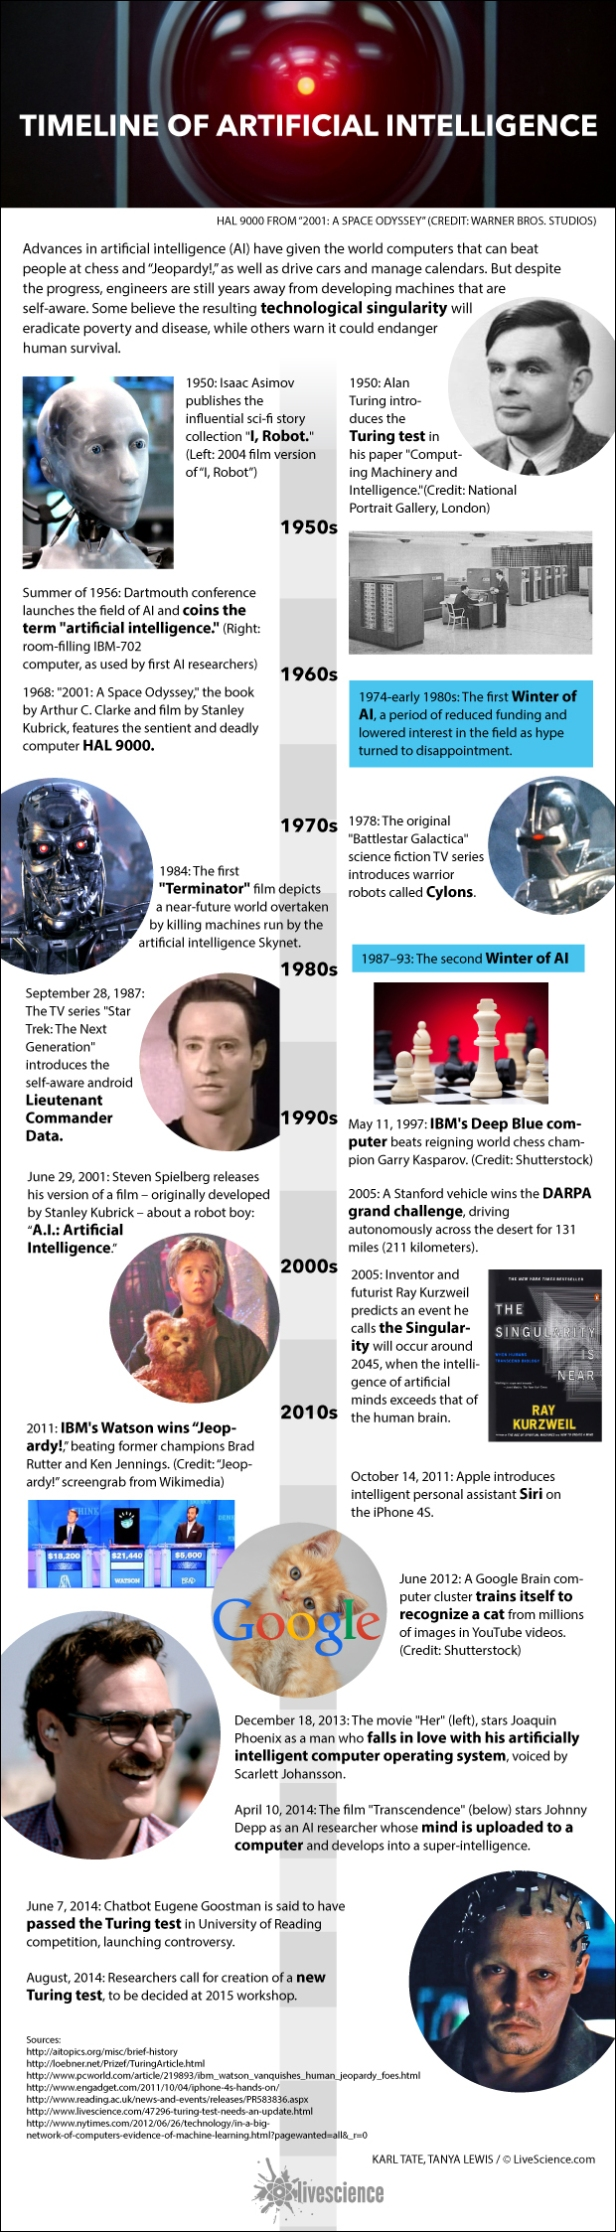 timeline-of-artificial-intelligence-history-ai-140812f-02